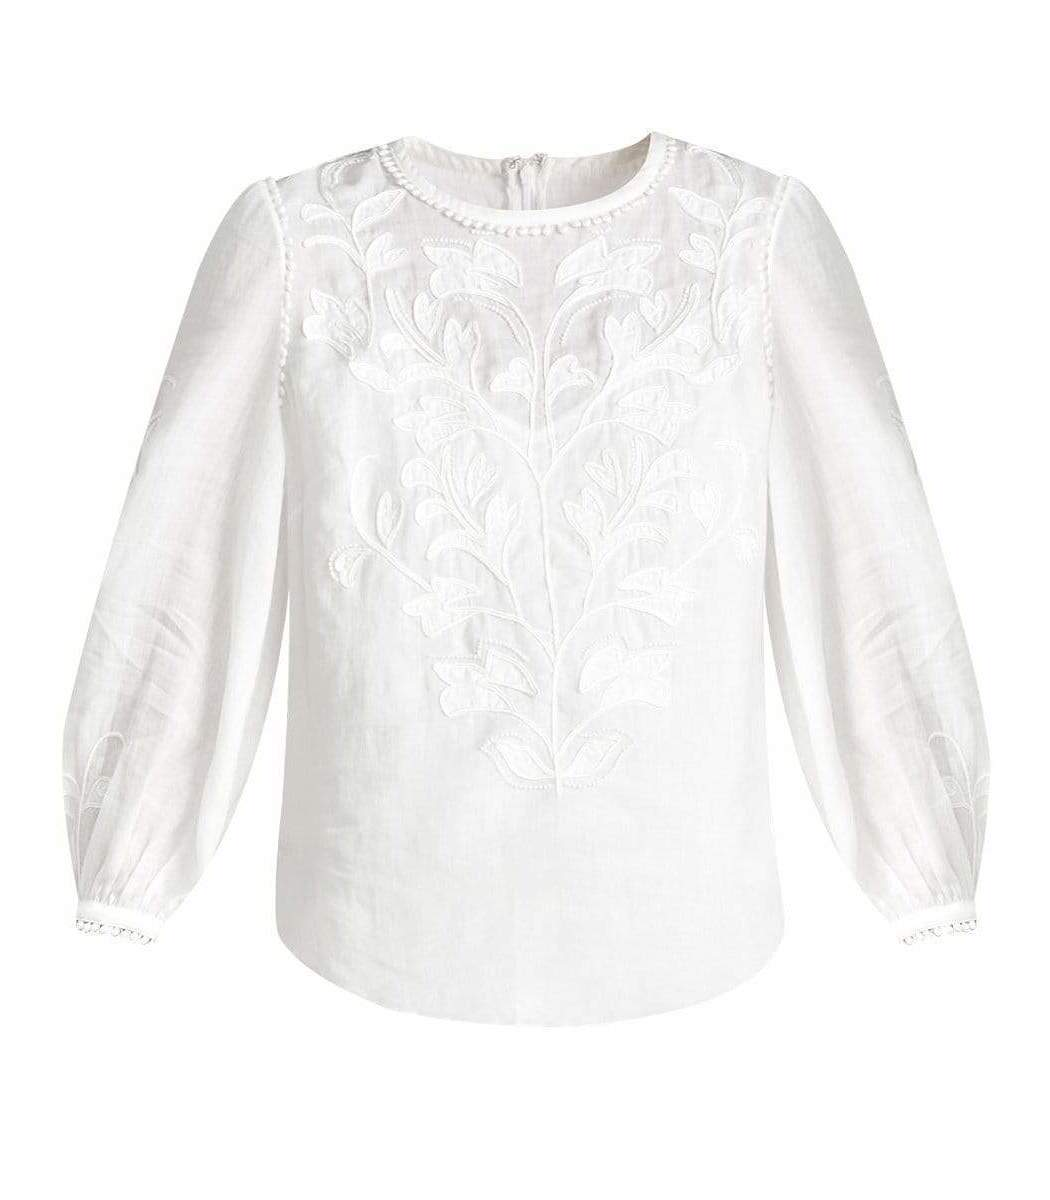 Veronica Beard White Maryana Embroidered Top